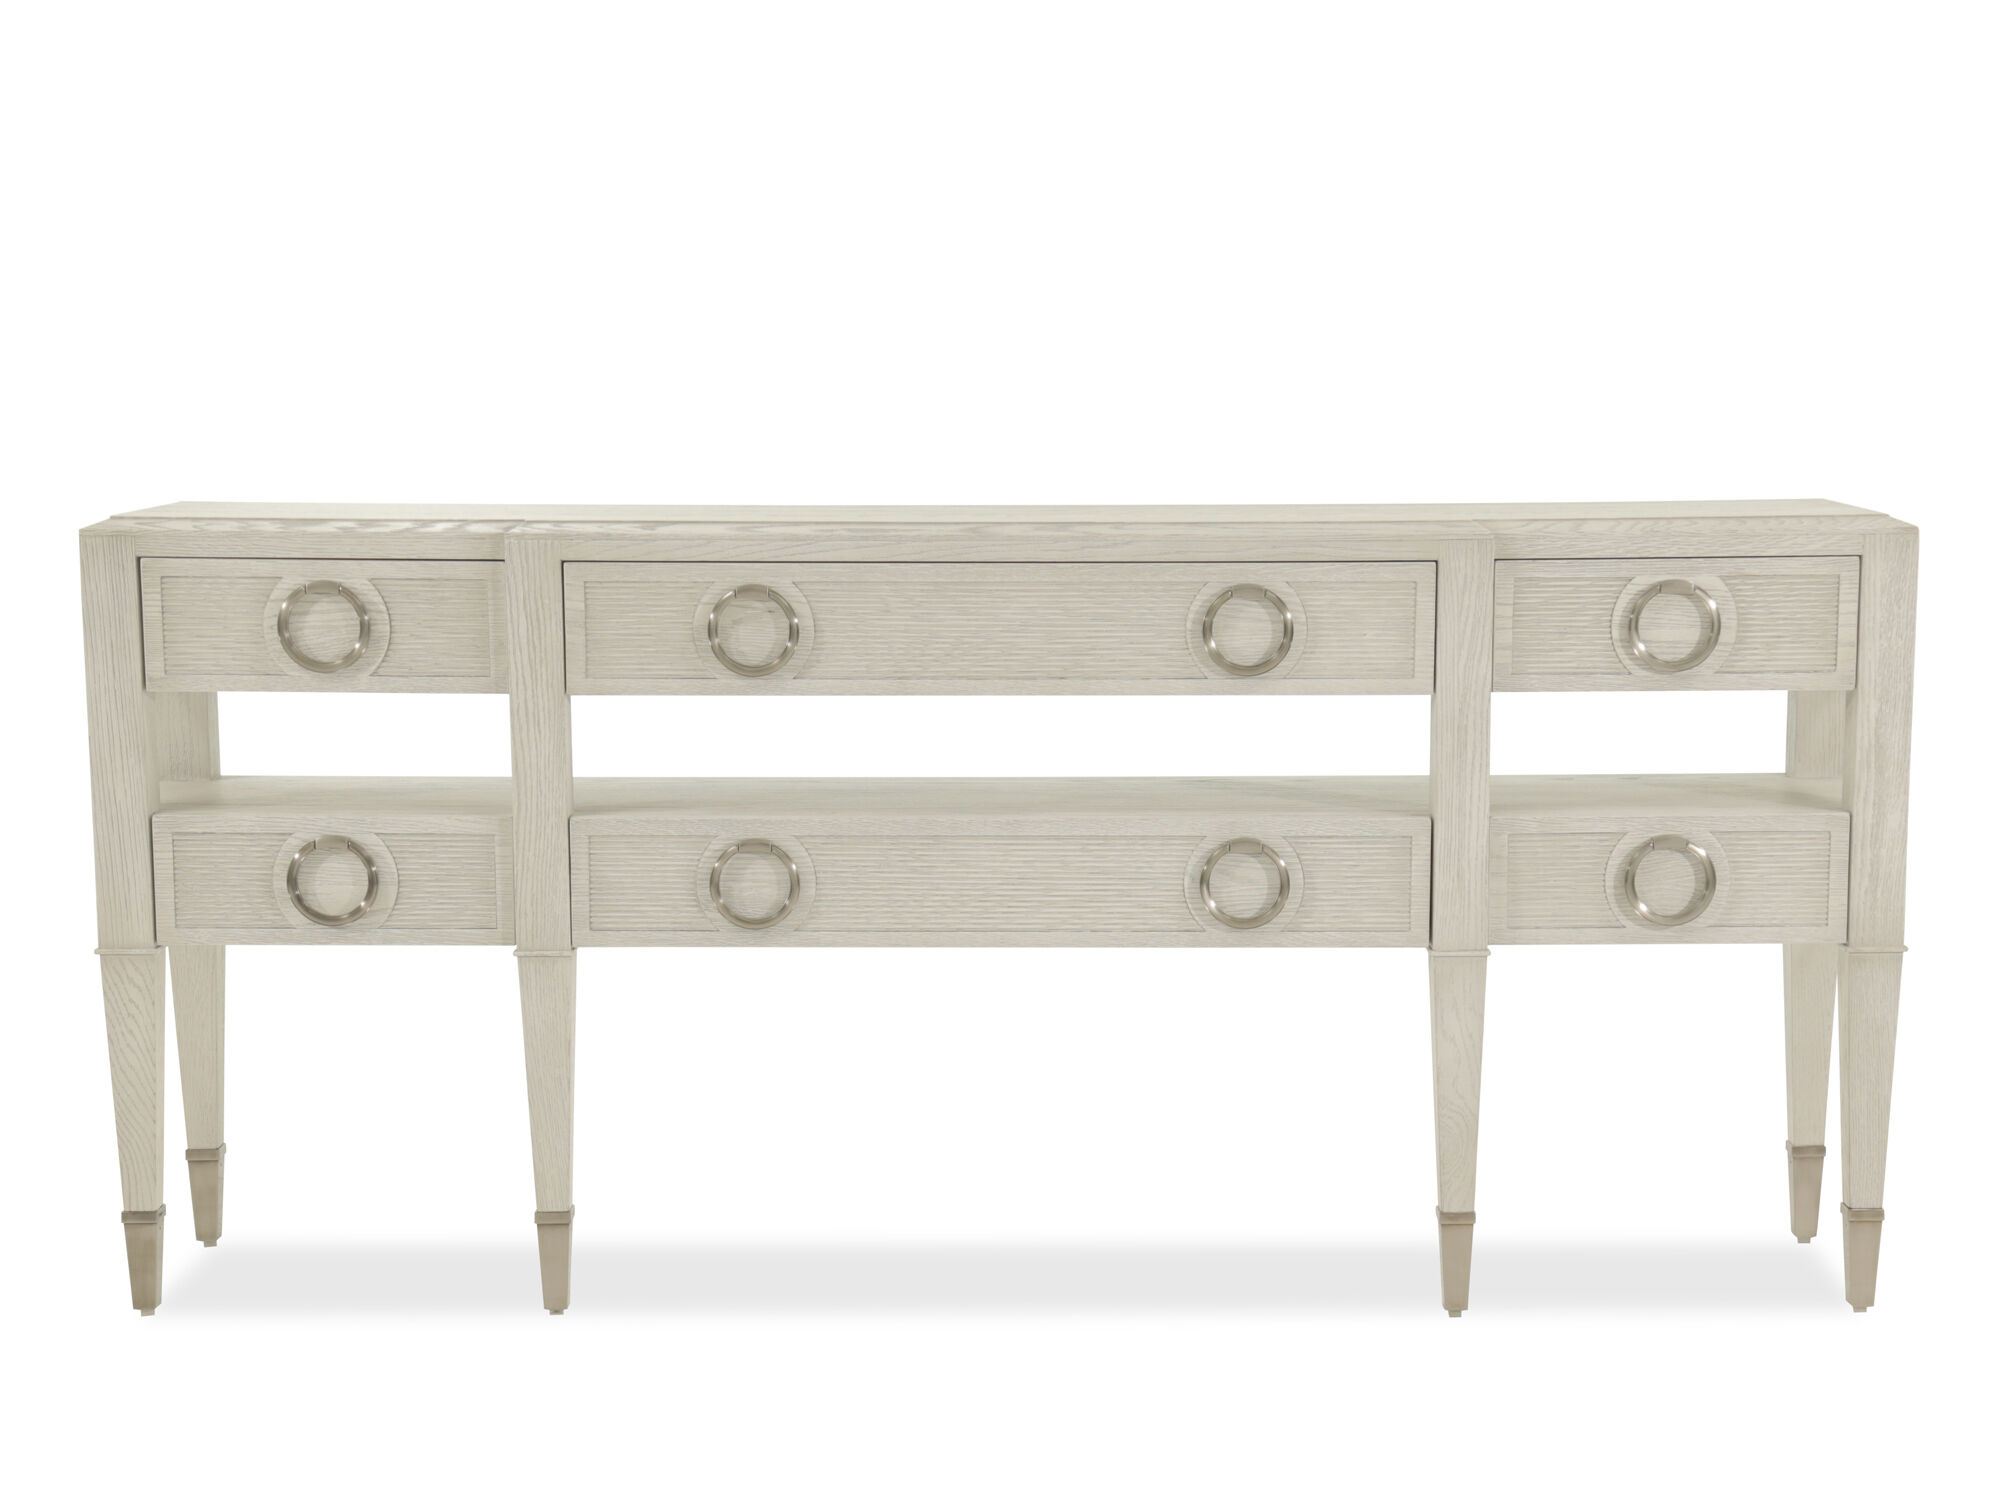 SixDrawer Modern Console Table in Dove White Mathis Brothers